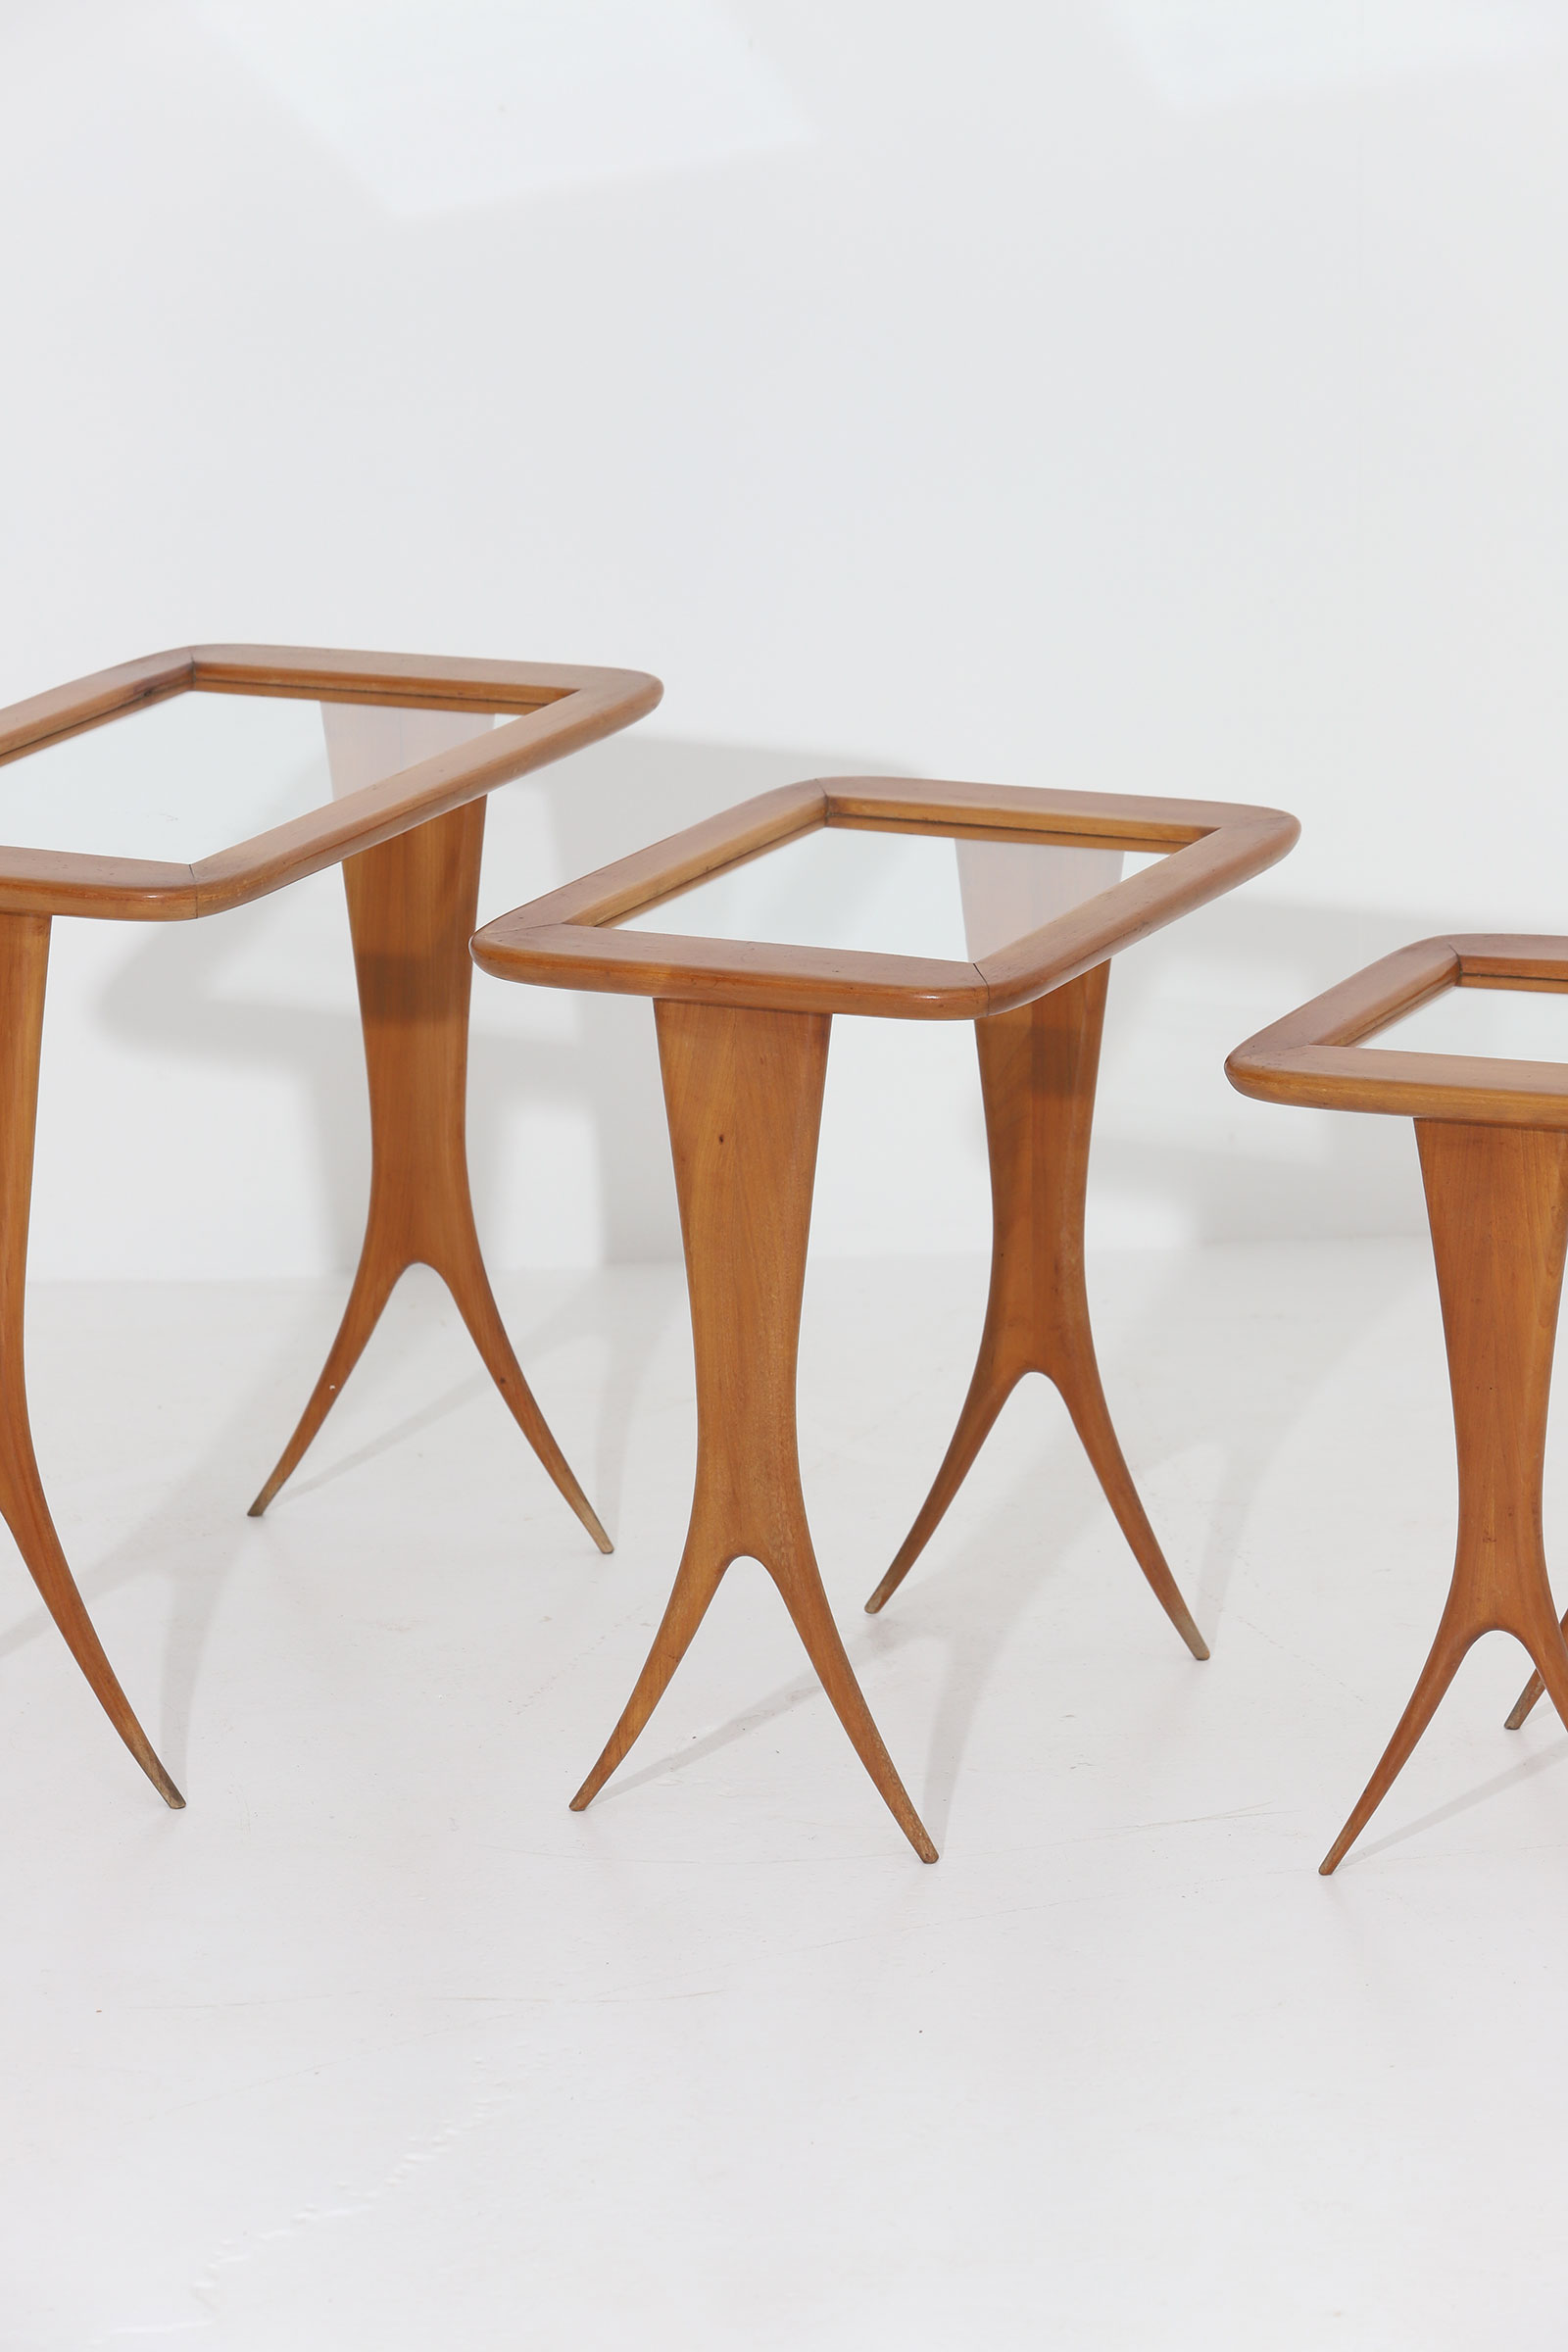 Rare 1950s nesting tables Raphaelimage 3